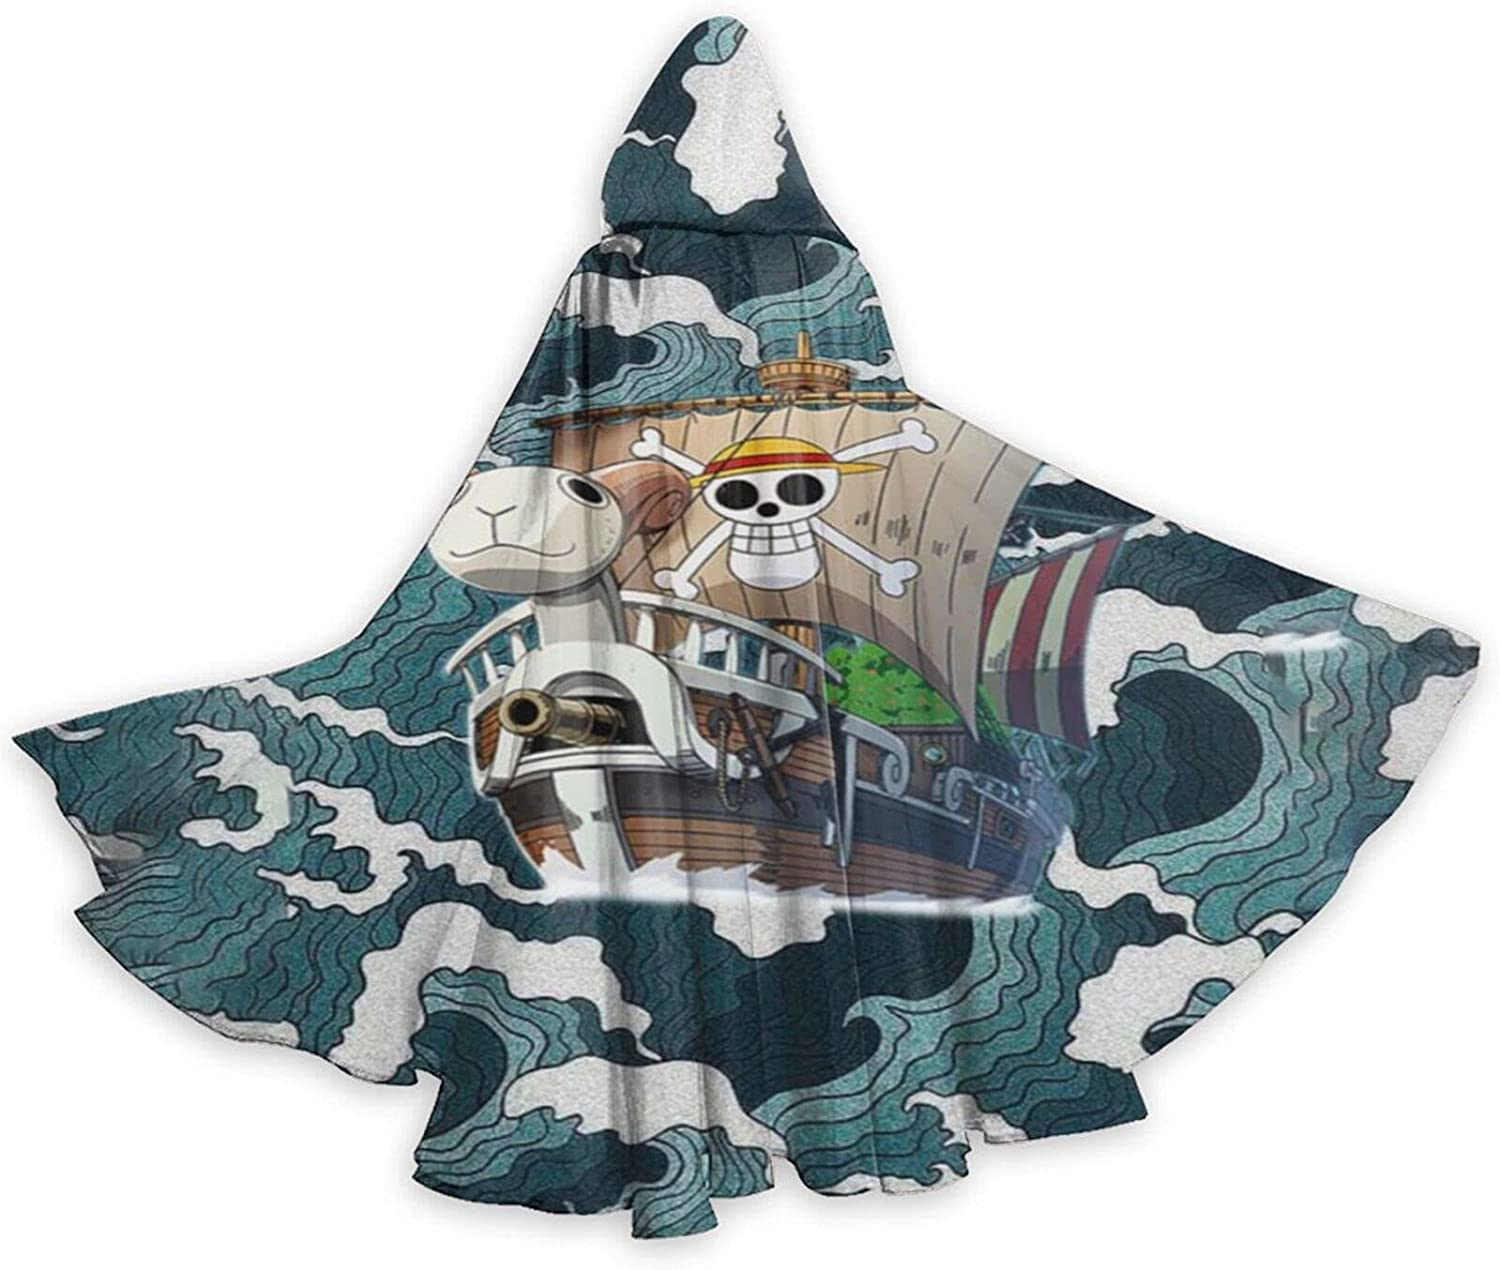 Unisex ONE P-IECE Anime Hooded Cospl Tampa Mall 2021 model Cloak Robe Halloween Wizard